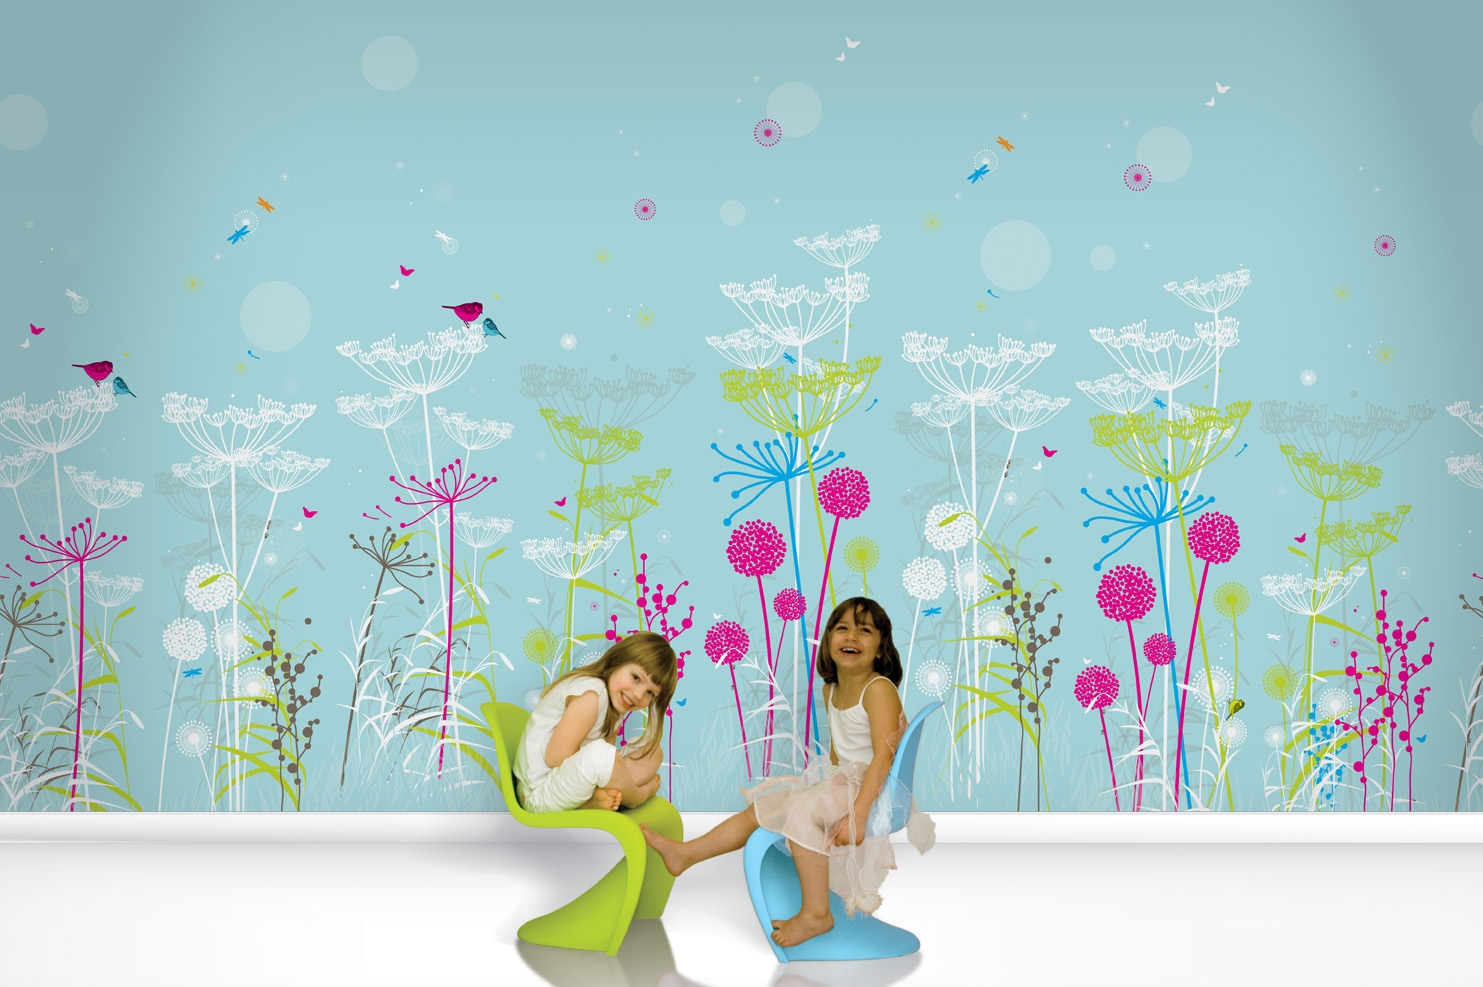 24 kids wallpapers images pictures design trends for Wallpaper design ideas